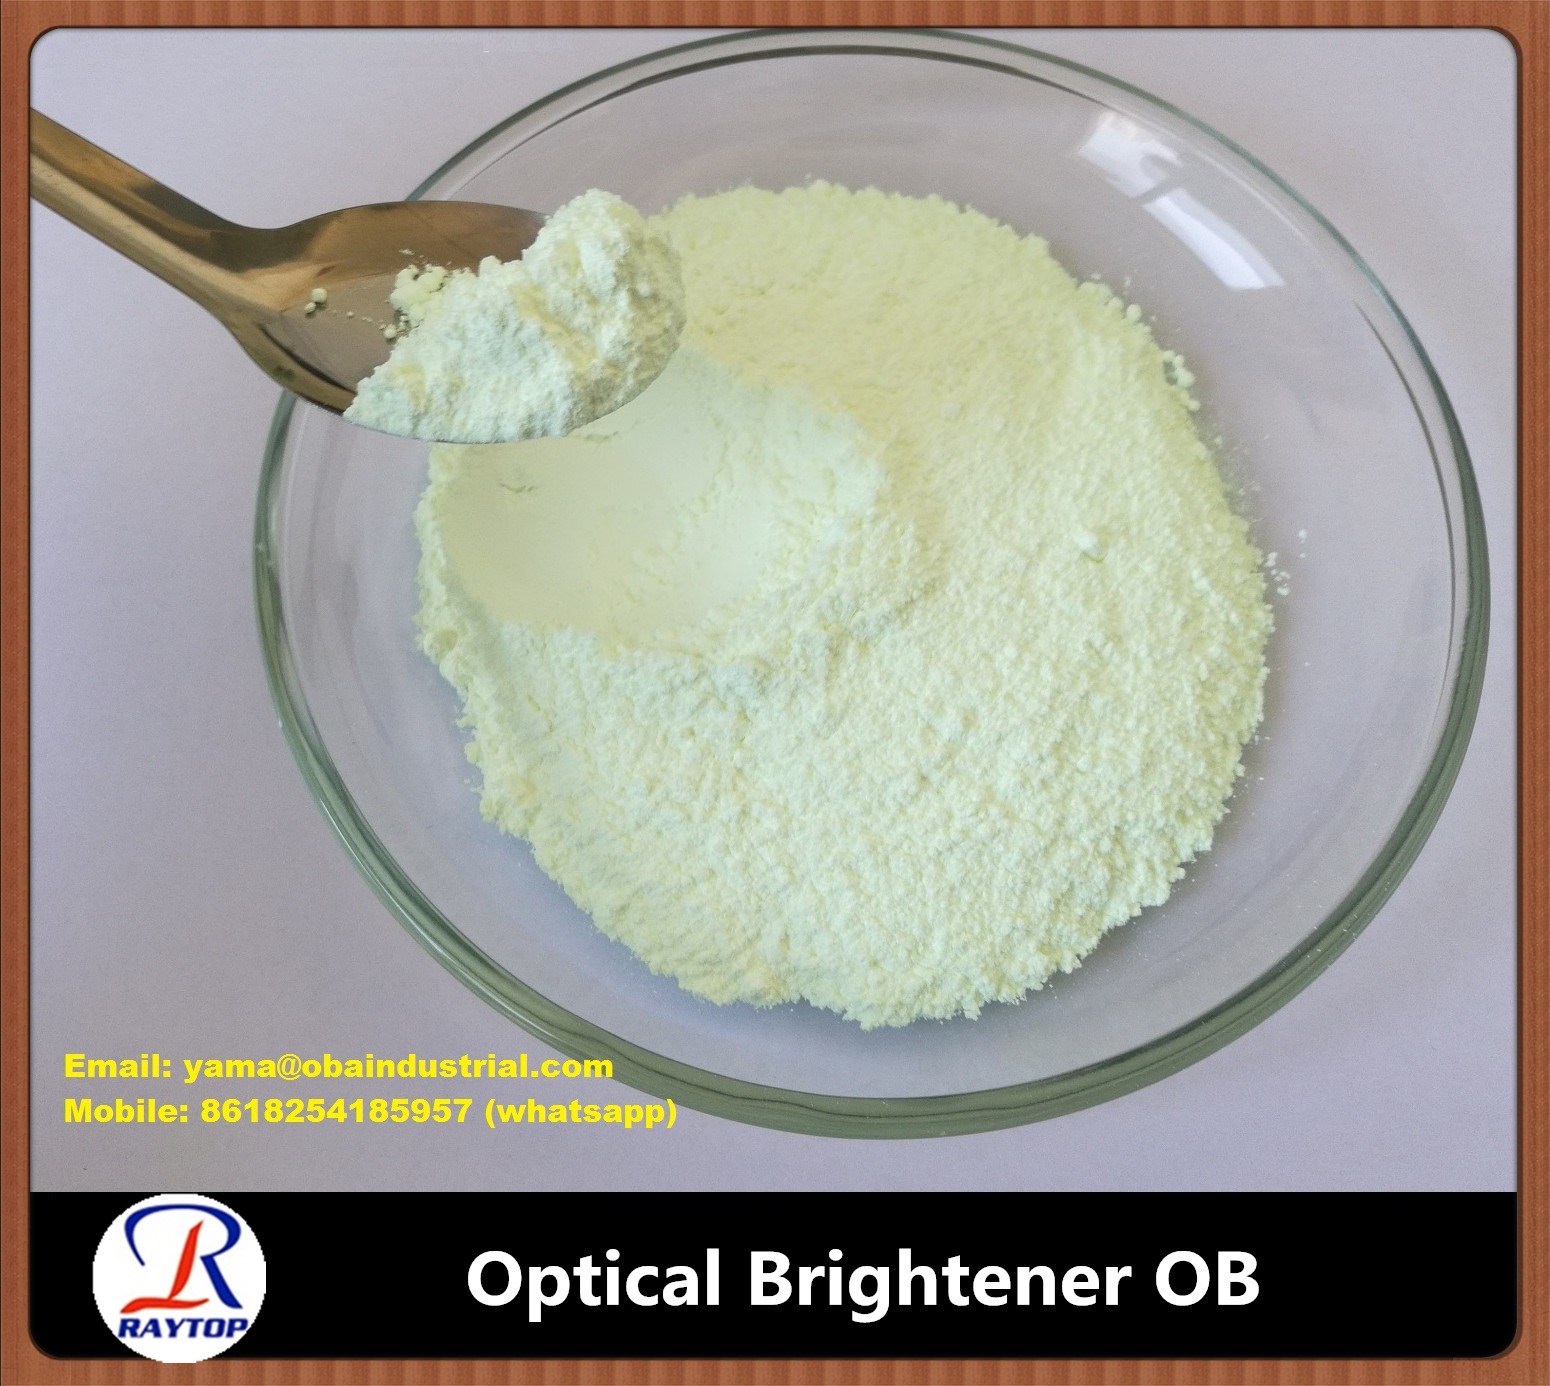 Plastic Optical Brightener OB used on the coating